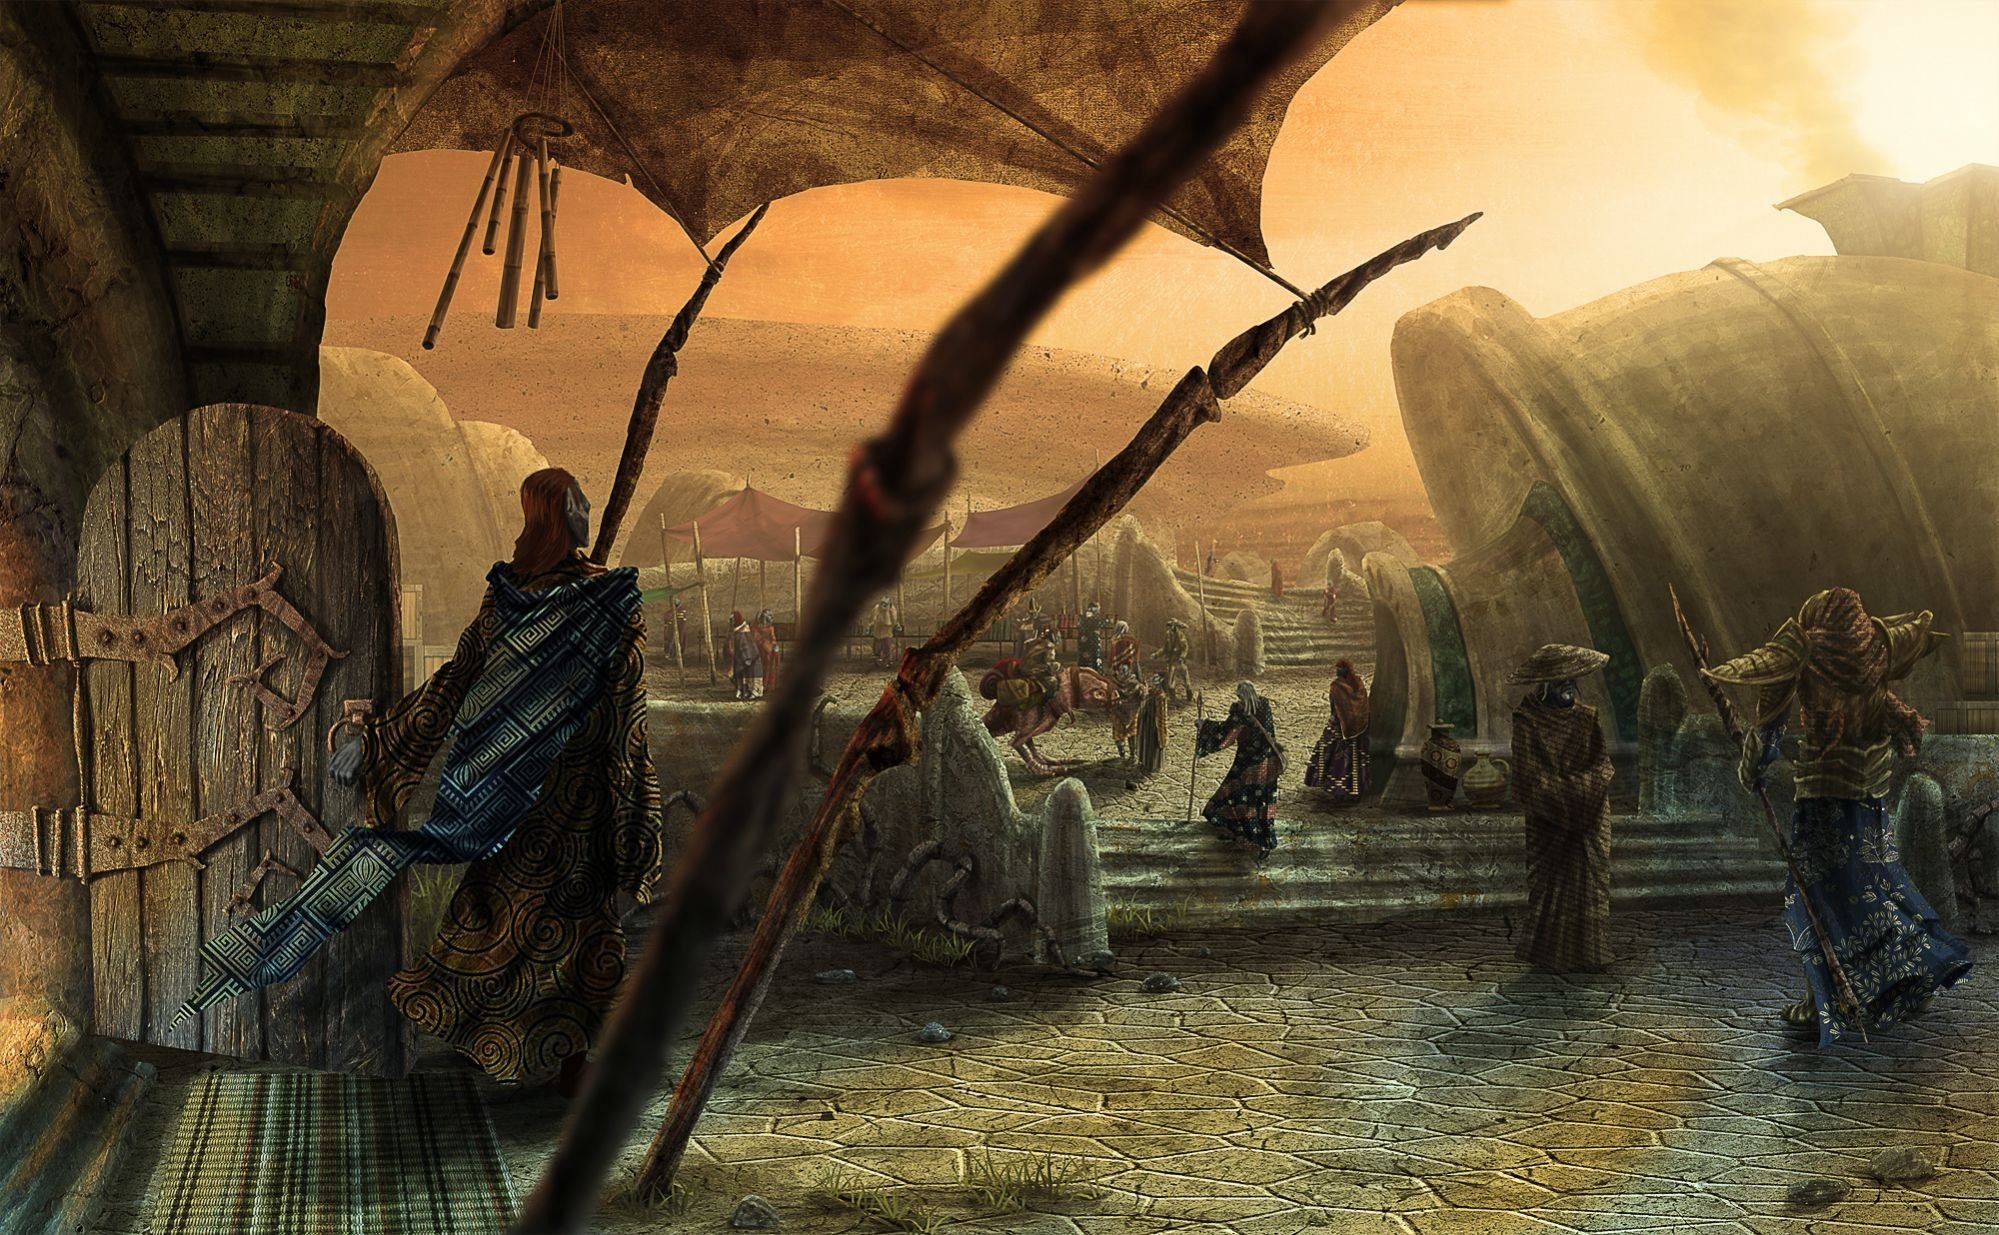 Morrowind Wallpaper 1 Download Free Awesome Full HD Wallpapers For